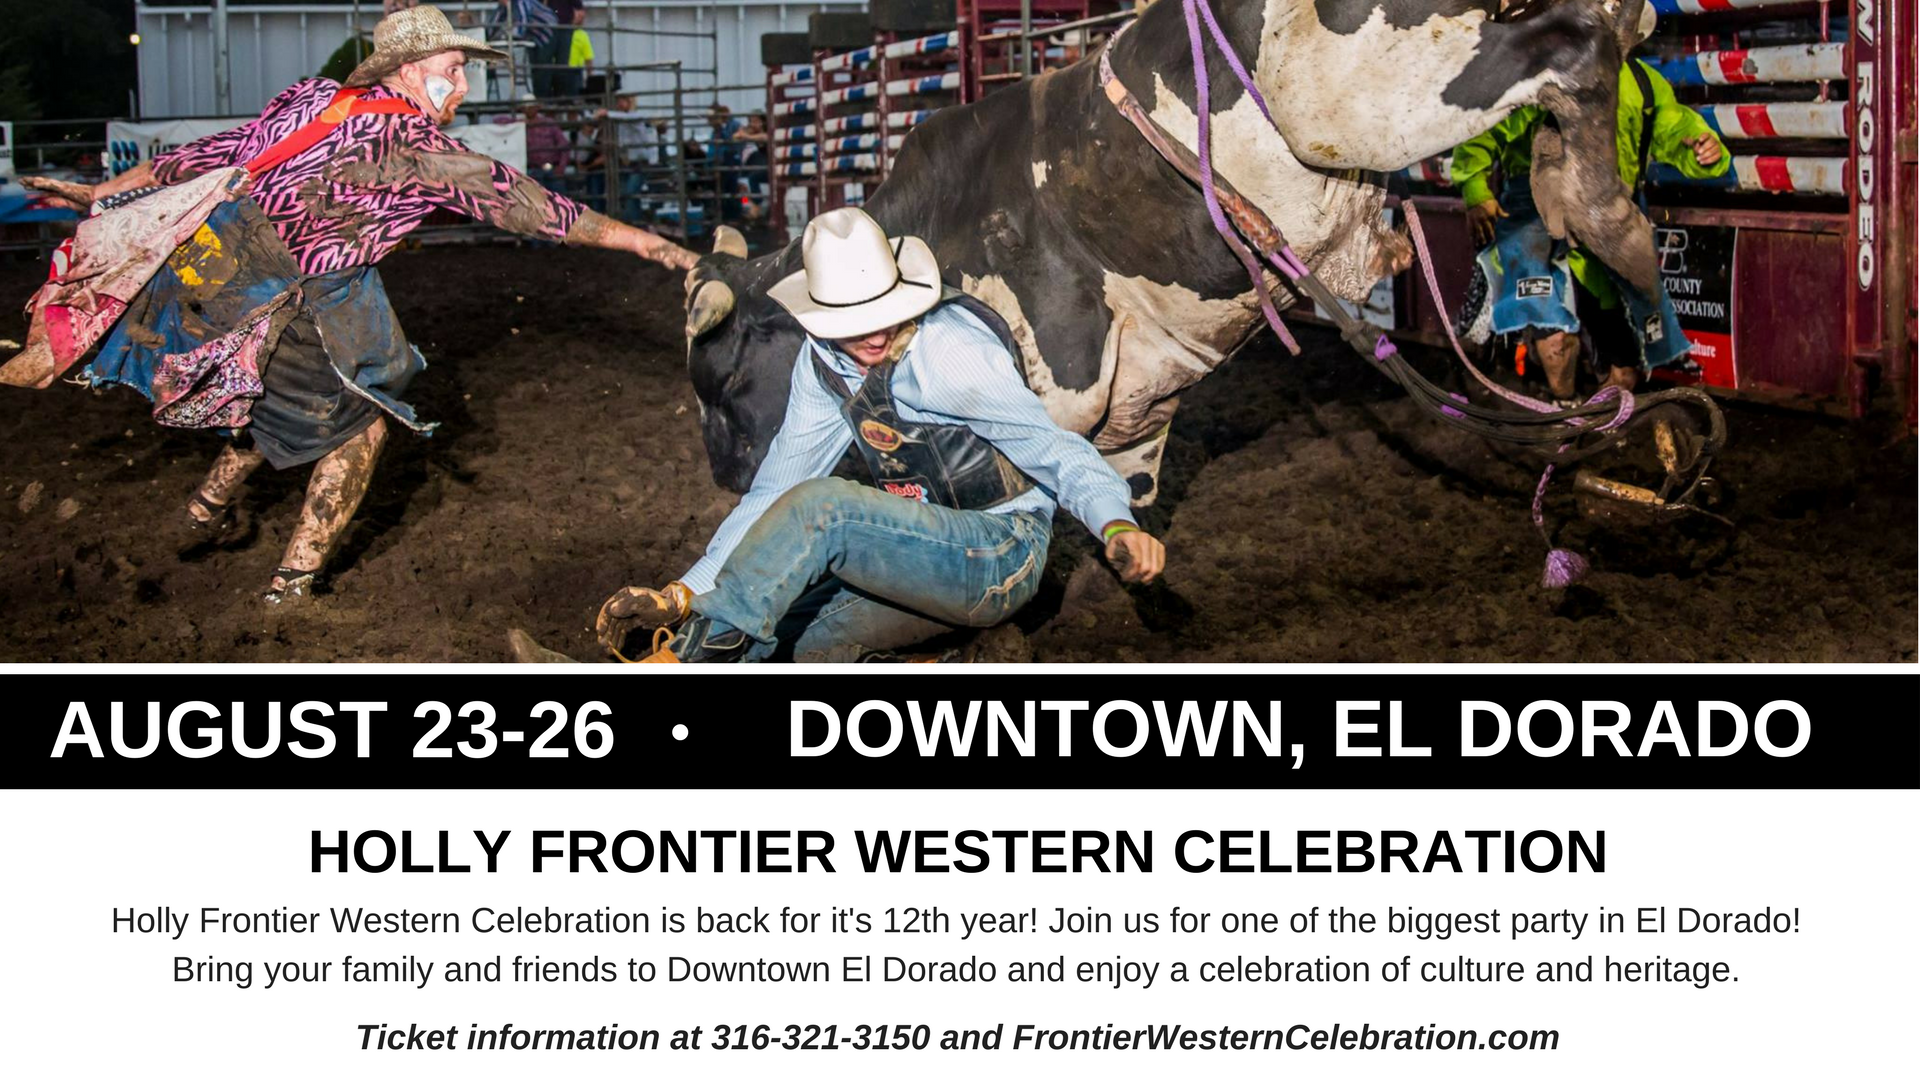 Holly Frontier Western Celebration Ticket Info 2018